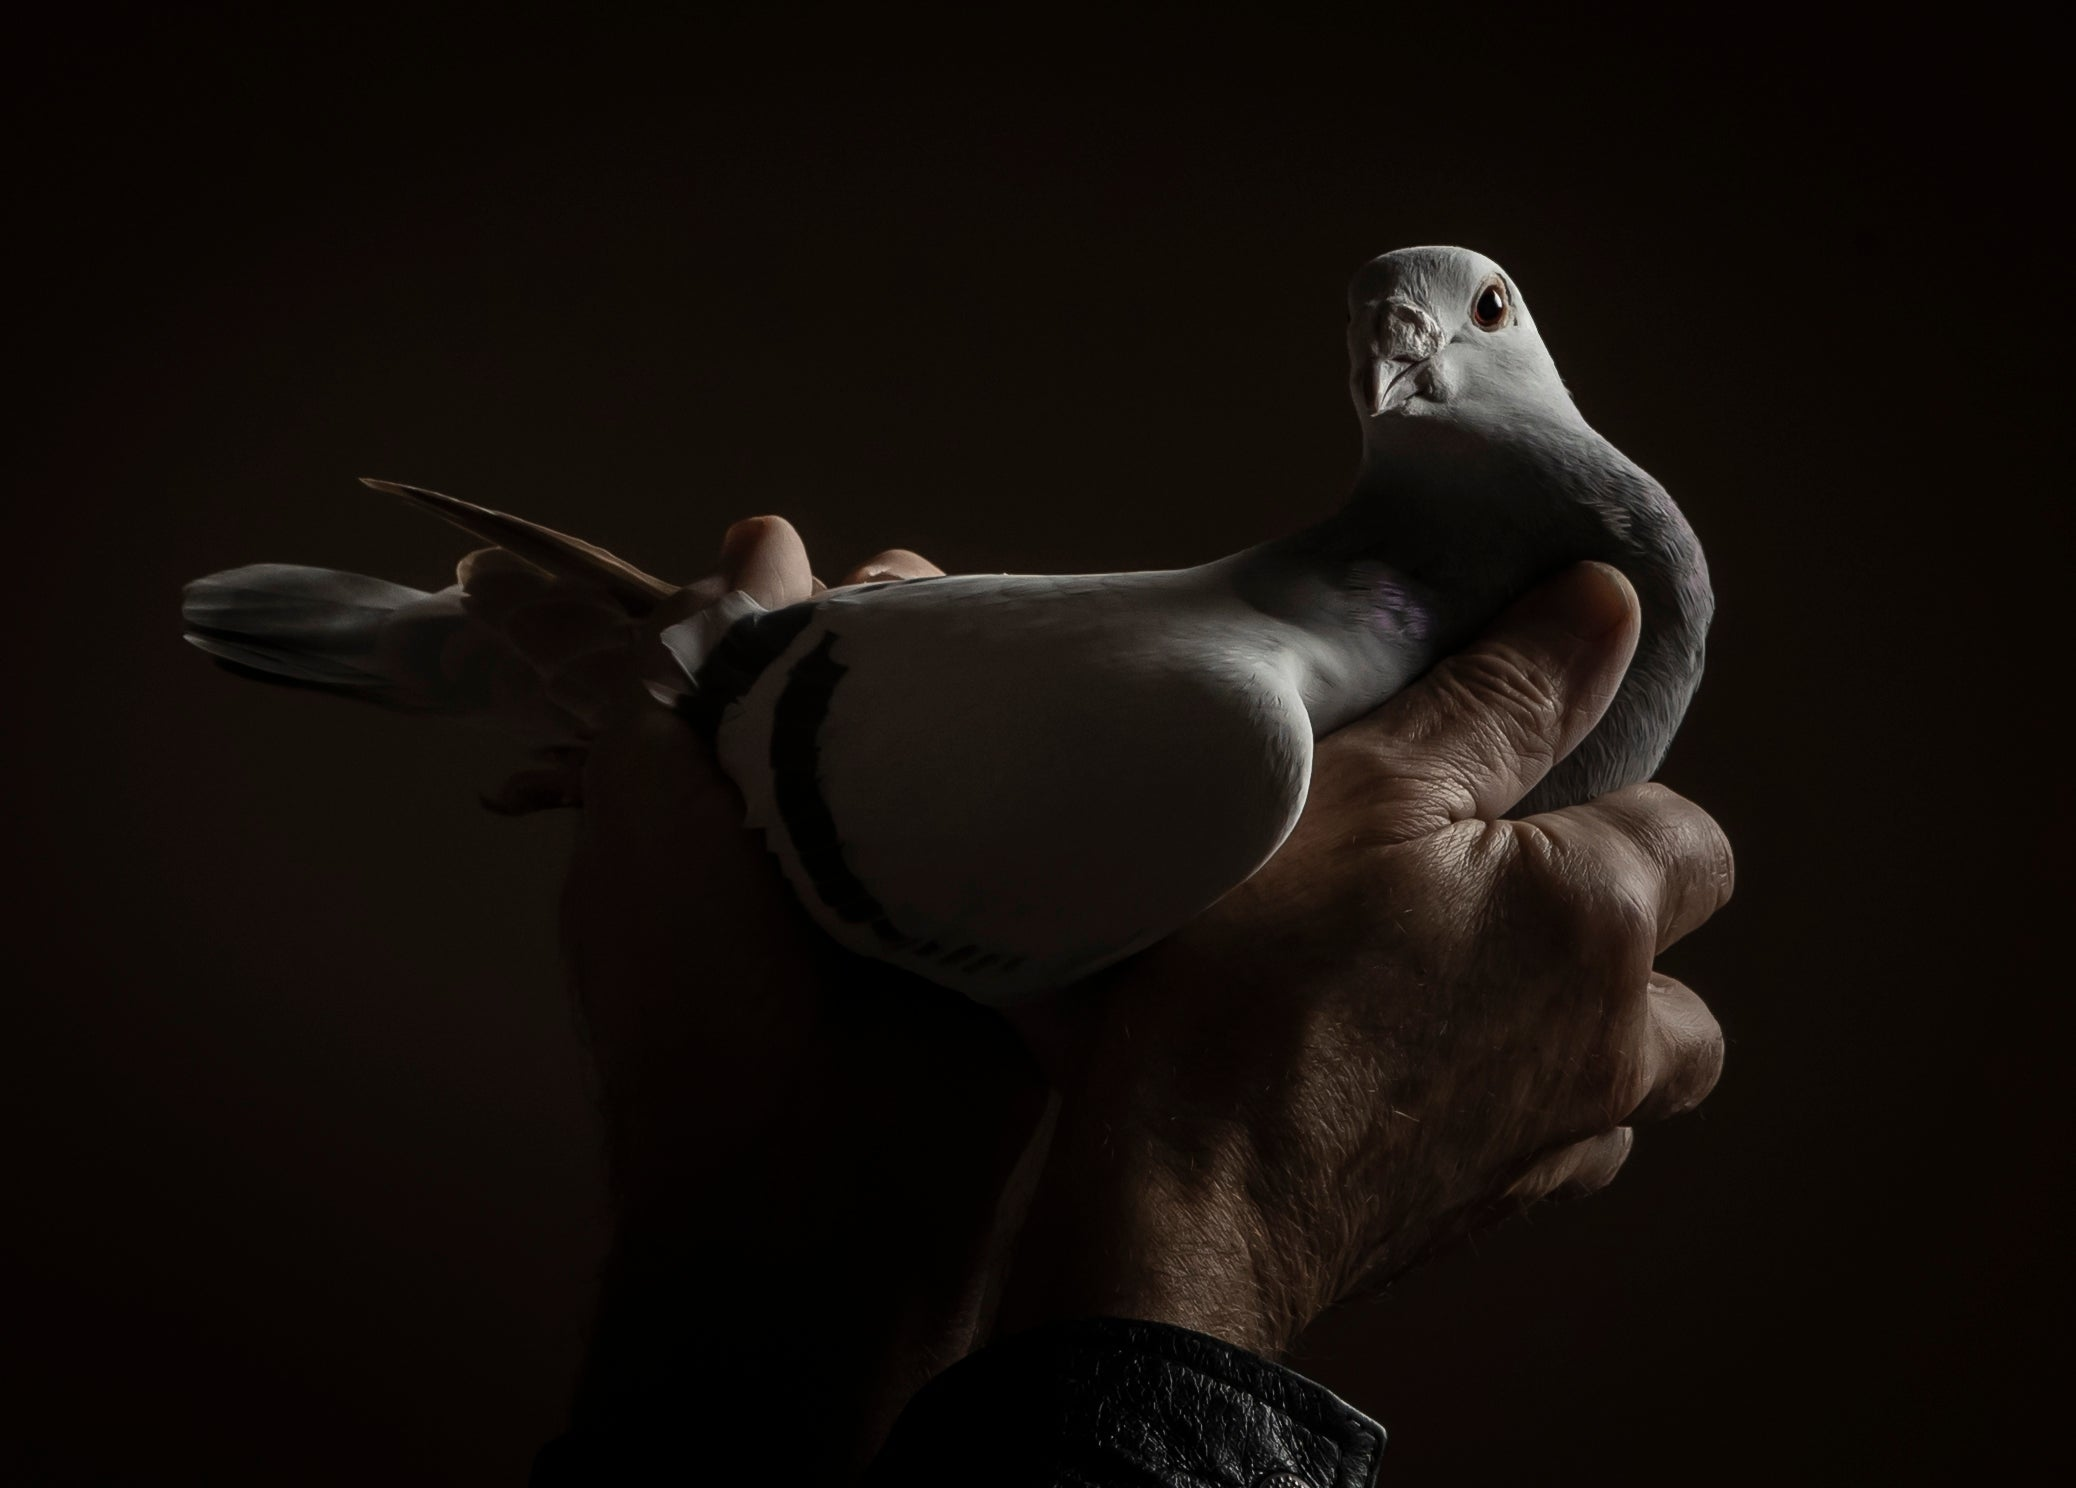 Pakistani man demands return of 'spy' pigeon detained in India thumbnail